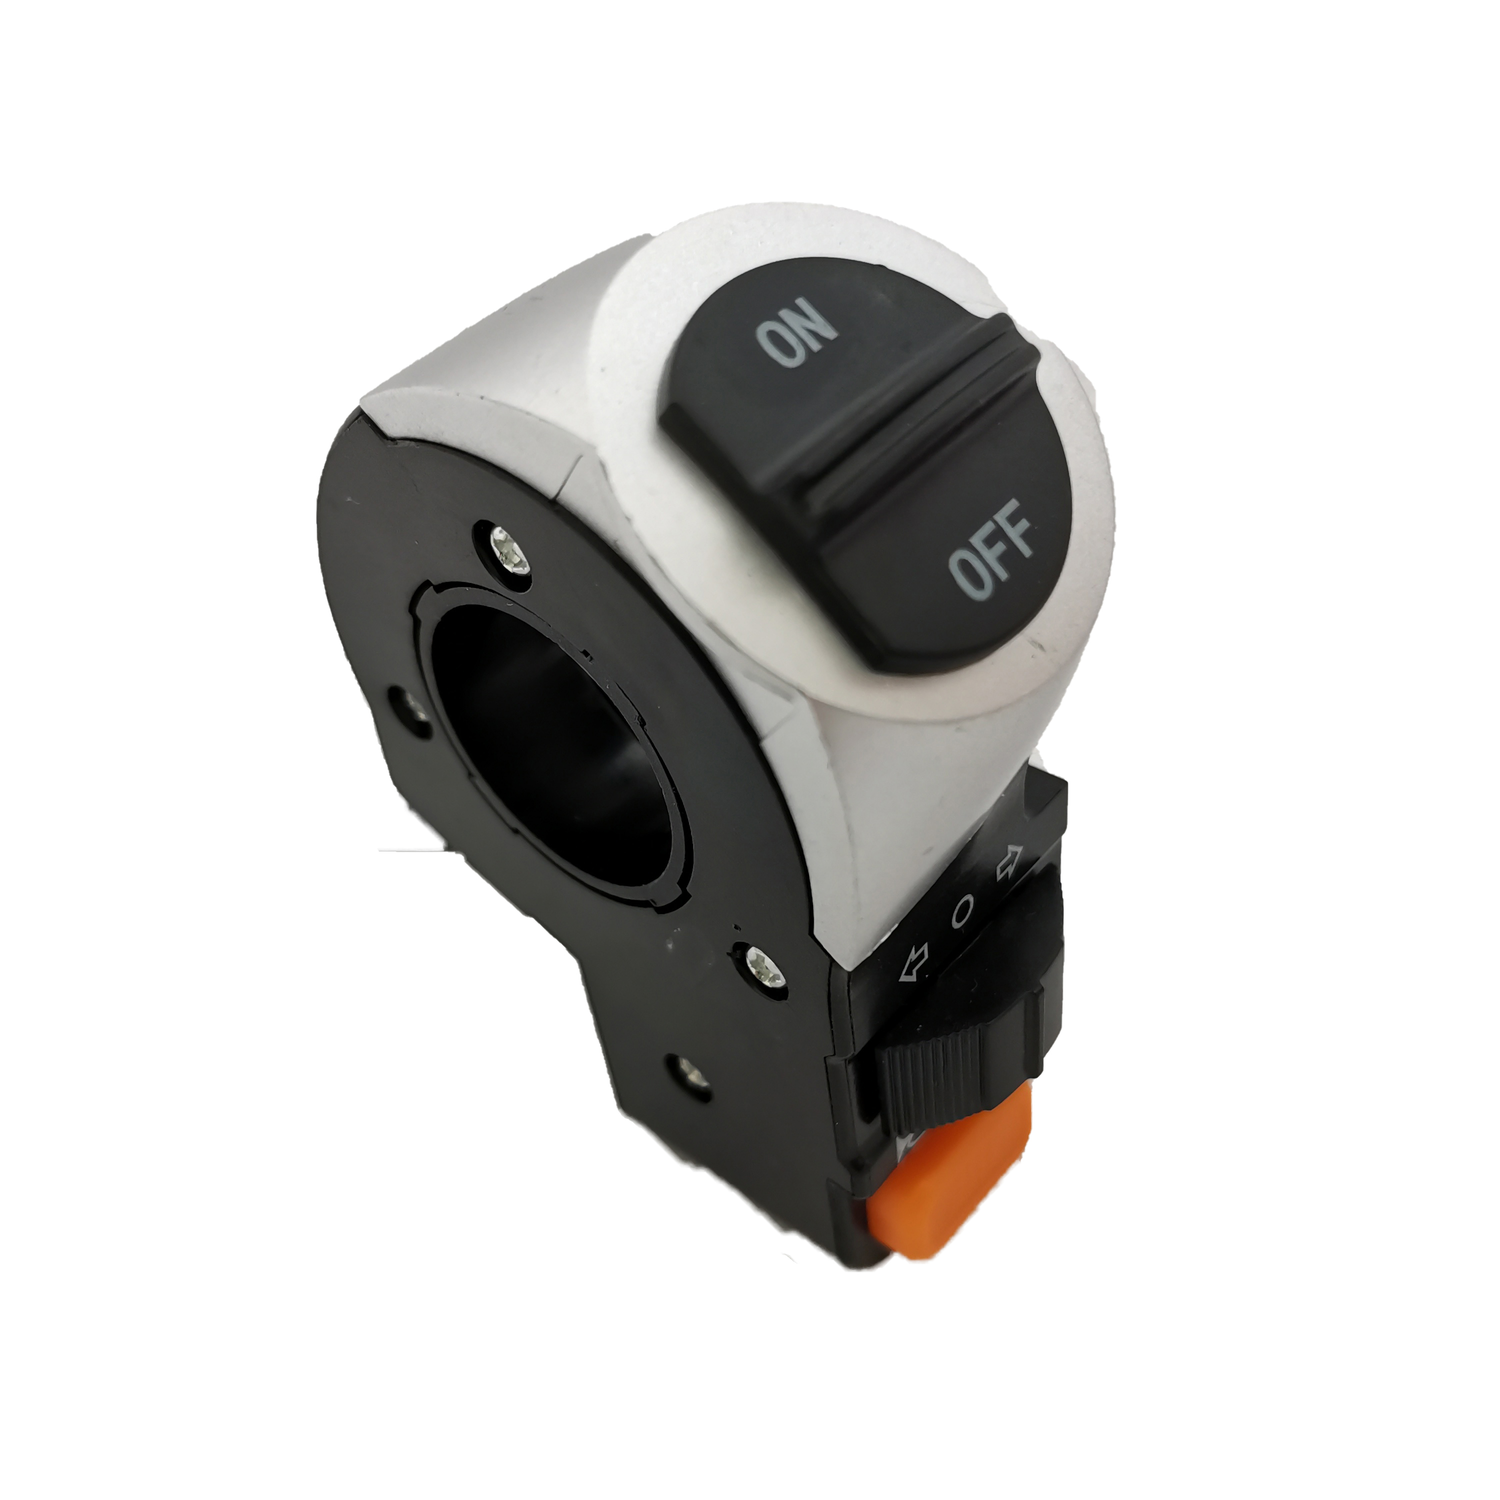 Headlight Switch Battery Safety Lock Accessories Easy Install on off Push Button Light Switch for Electric Bike Scooter